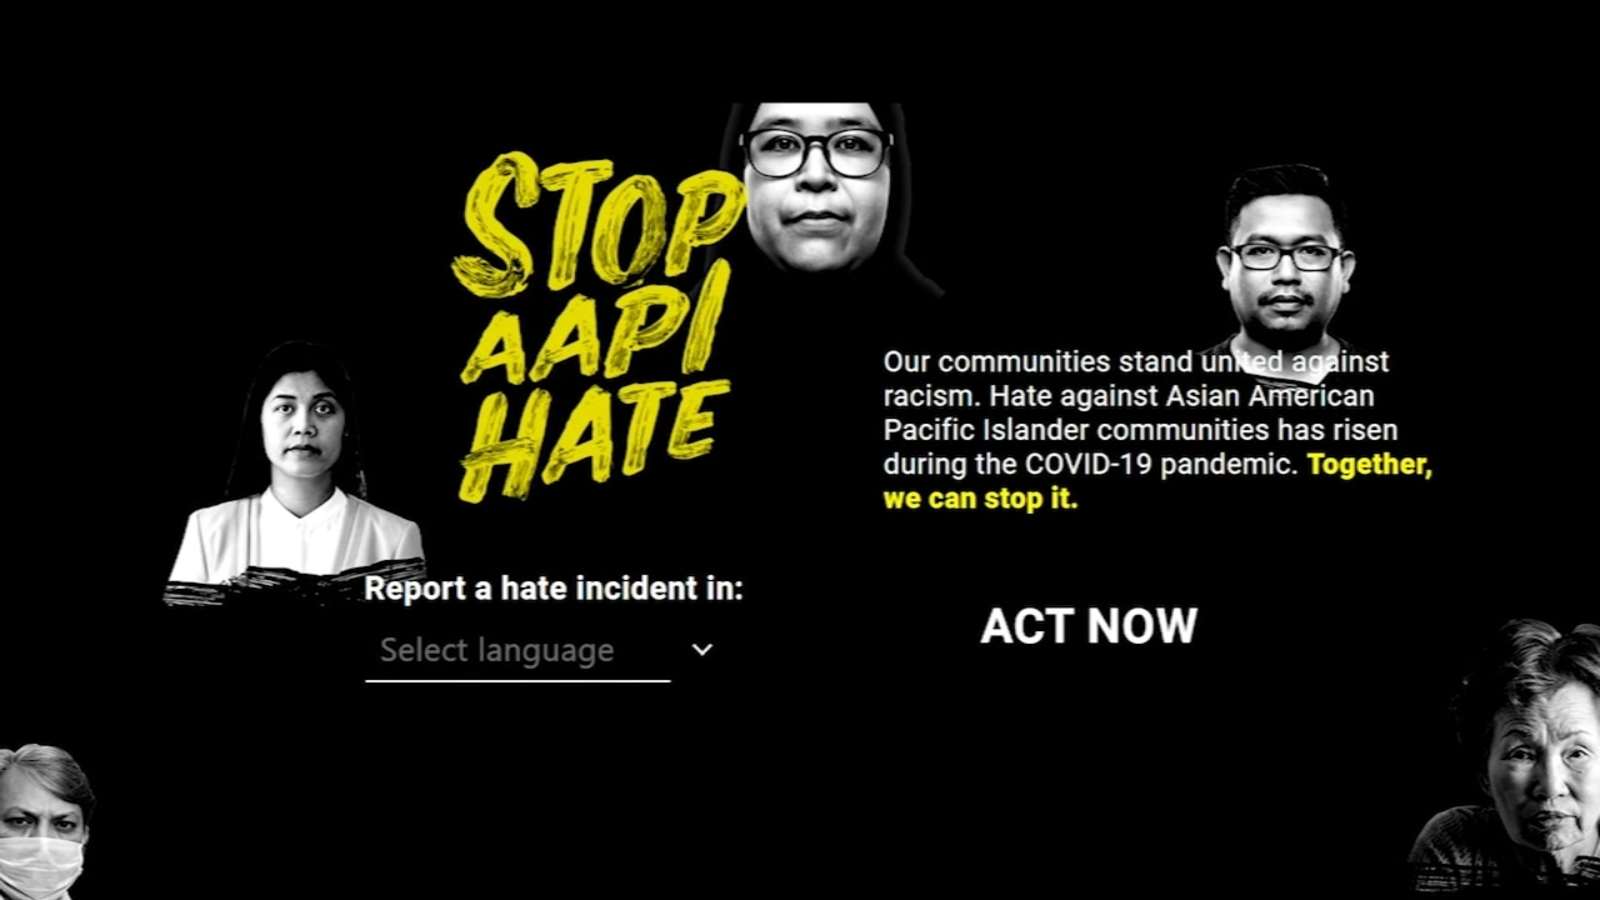 abc30.com: Hate crimes against Asian Americans are on the rise, where do we go from here?